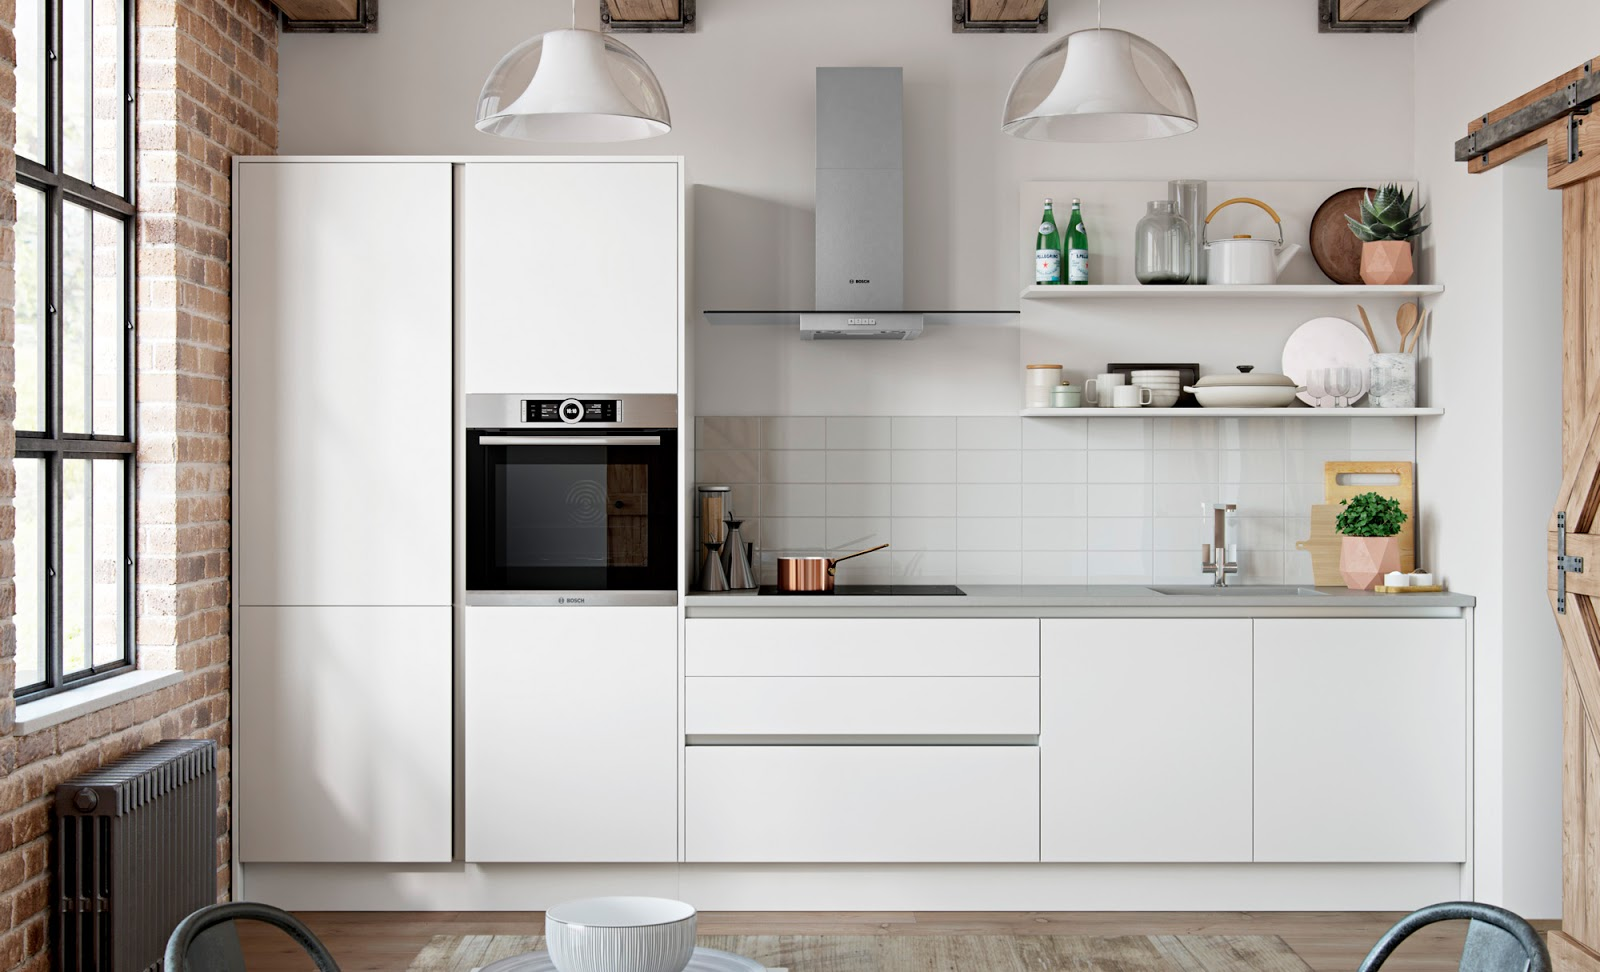 The kitchen yard made to order kitchen units doors and for Handless kitchen units